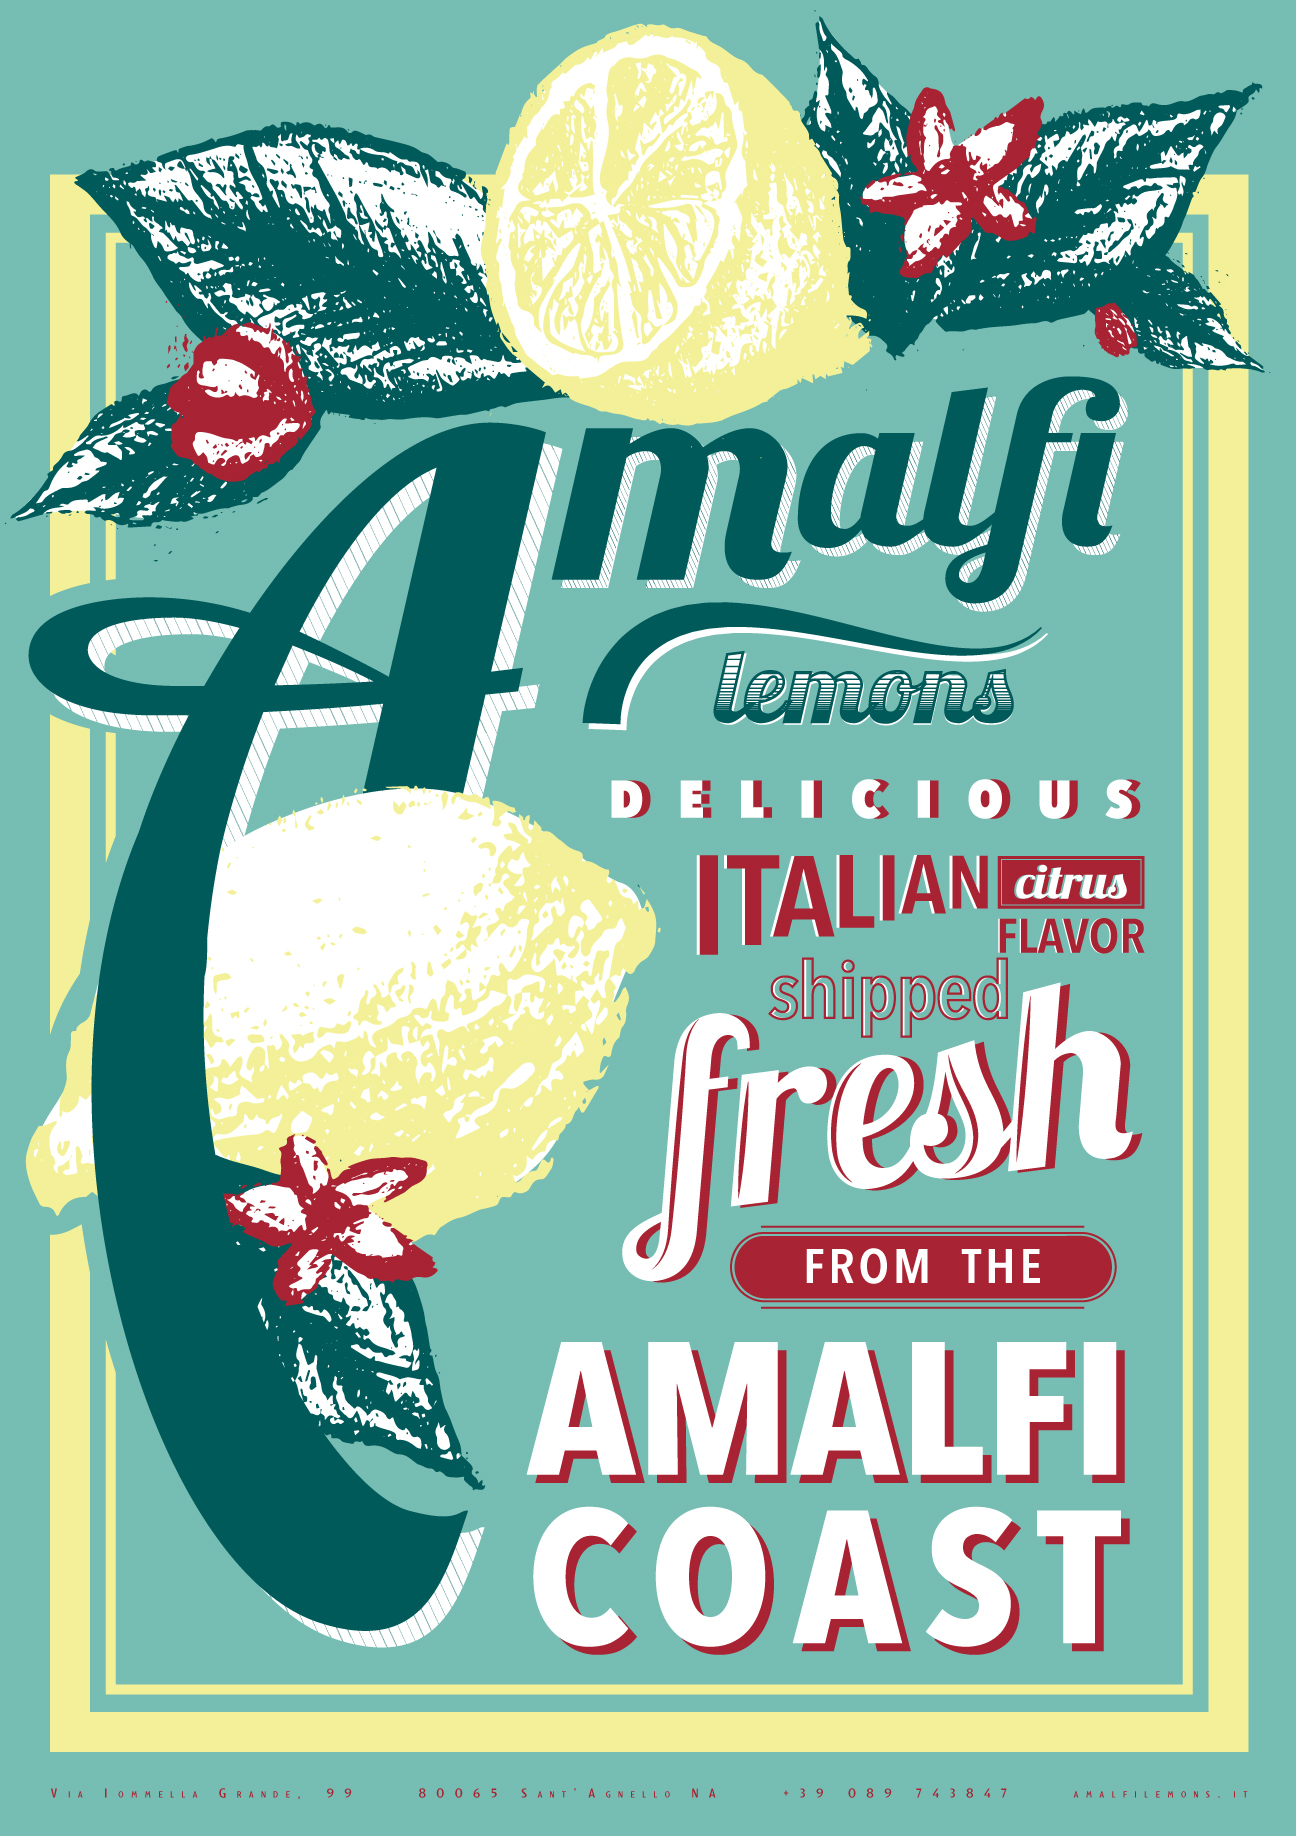 Amalfi Package Labeling and Promo Poster — Katelyn Oswald